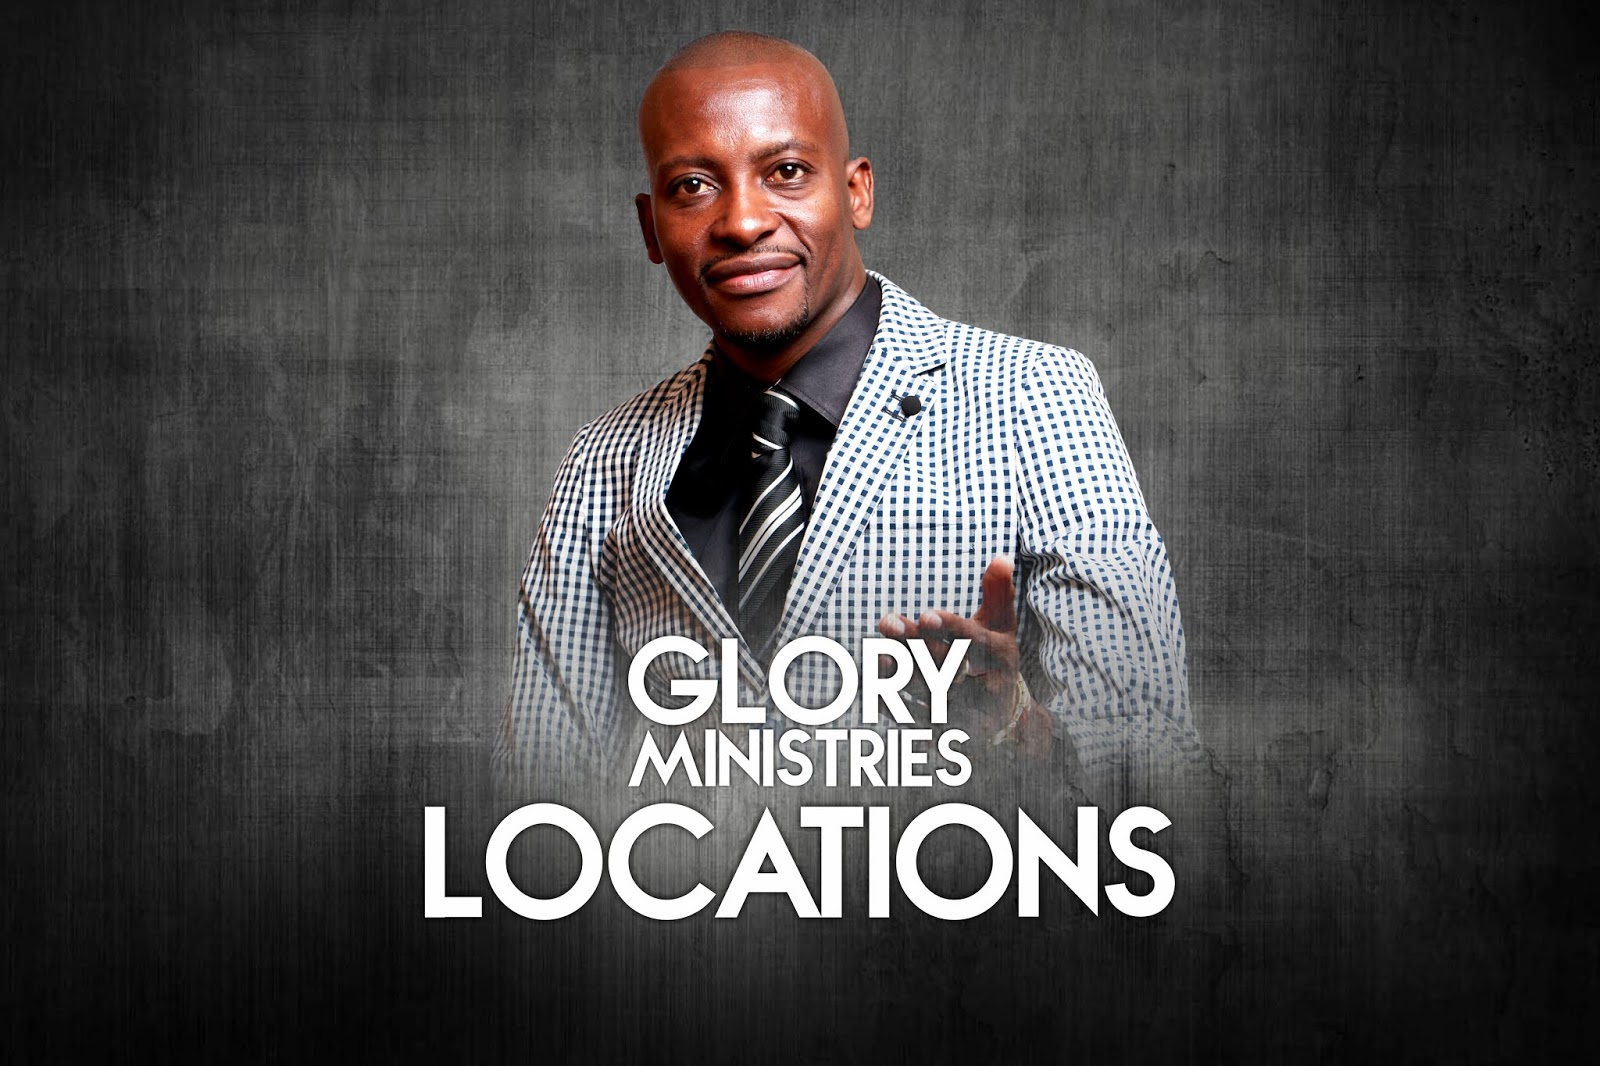 COME AS YOU ARE - Where Can I Find Glory Ministries - April 2019 Updated Information (Choose Your Location)